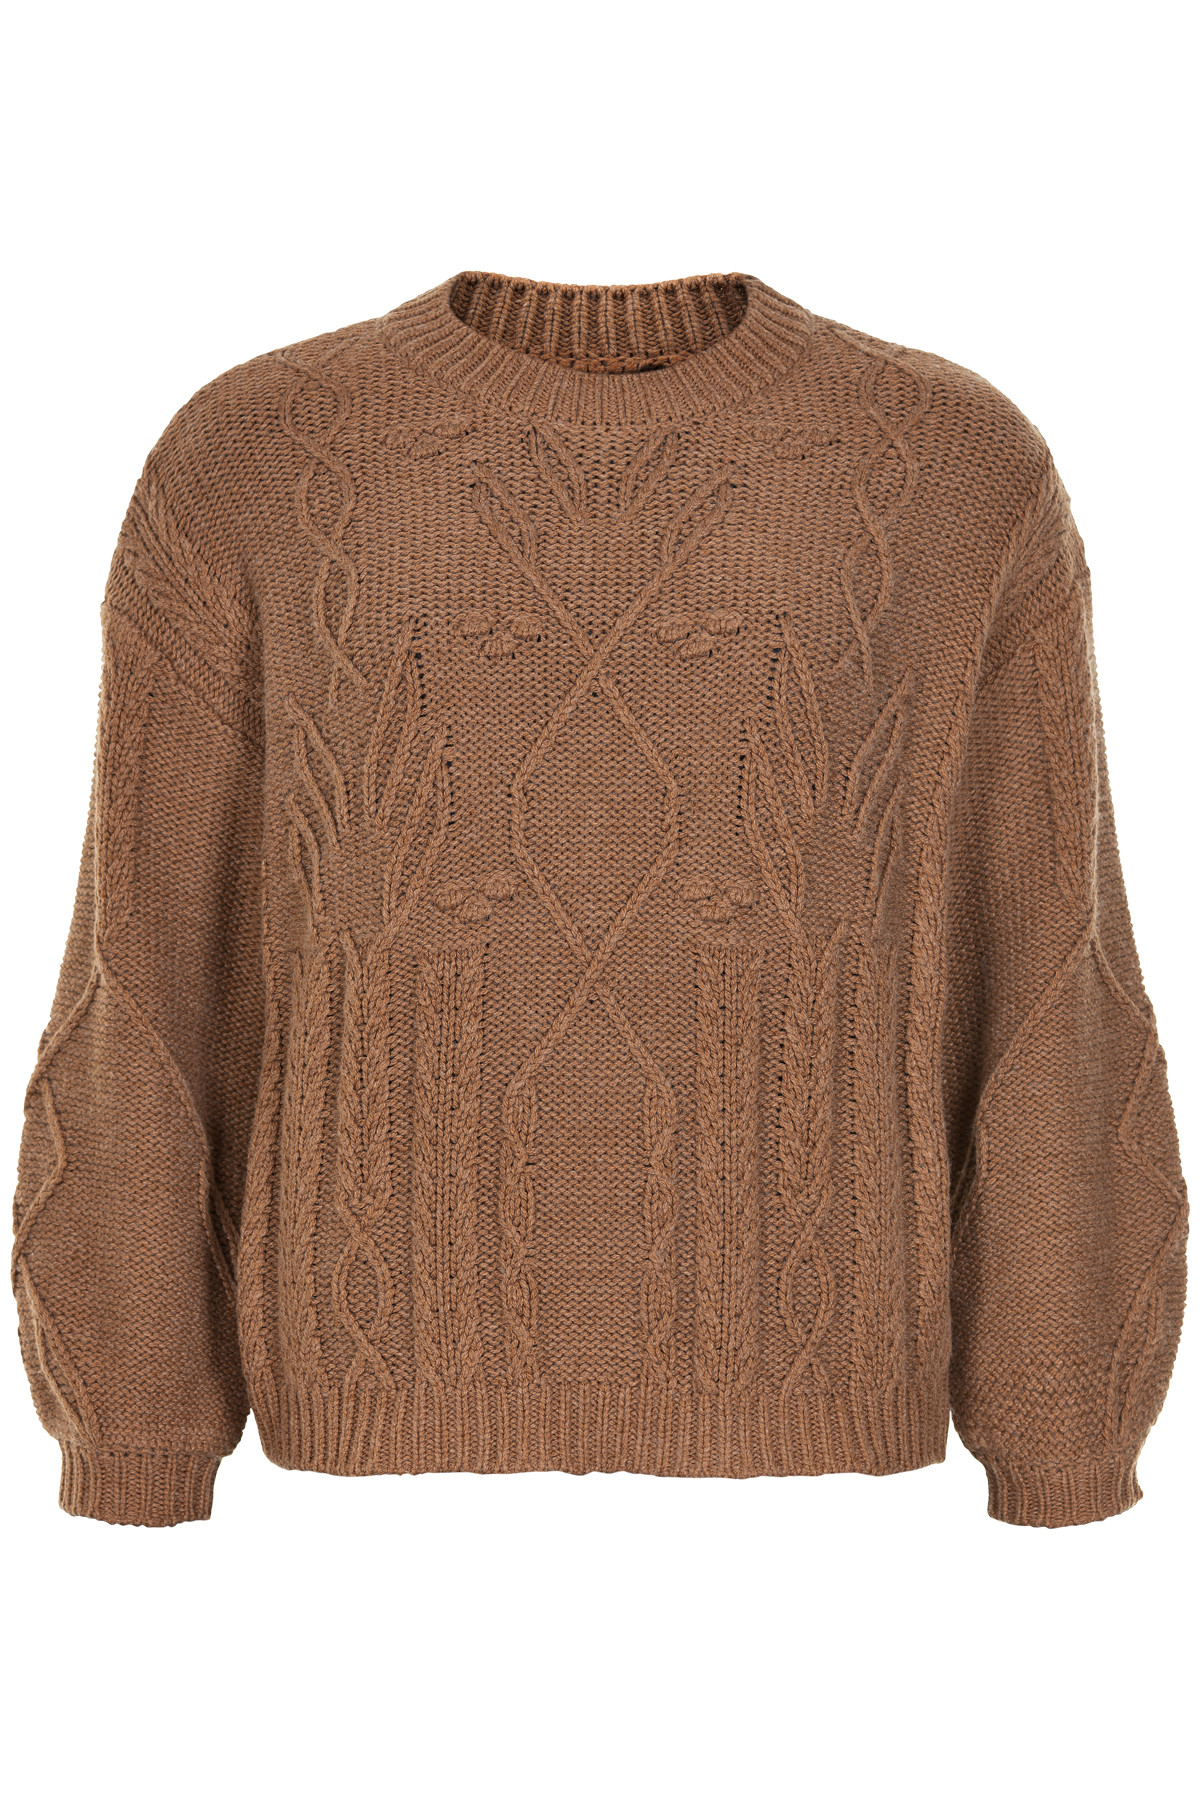 Image of   AND LESS AZENITH PULLOVER 5419205 (Dachshund, M)